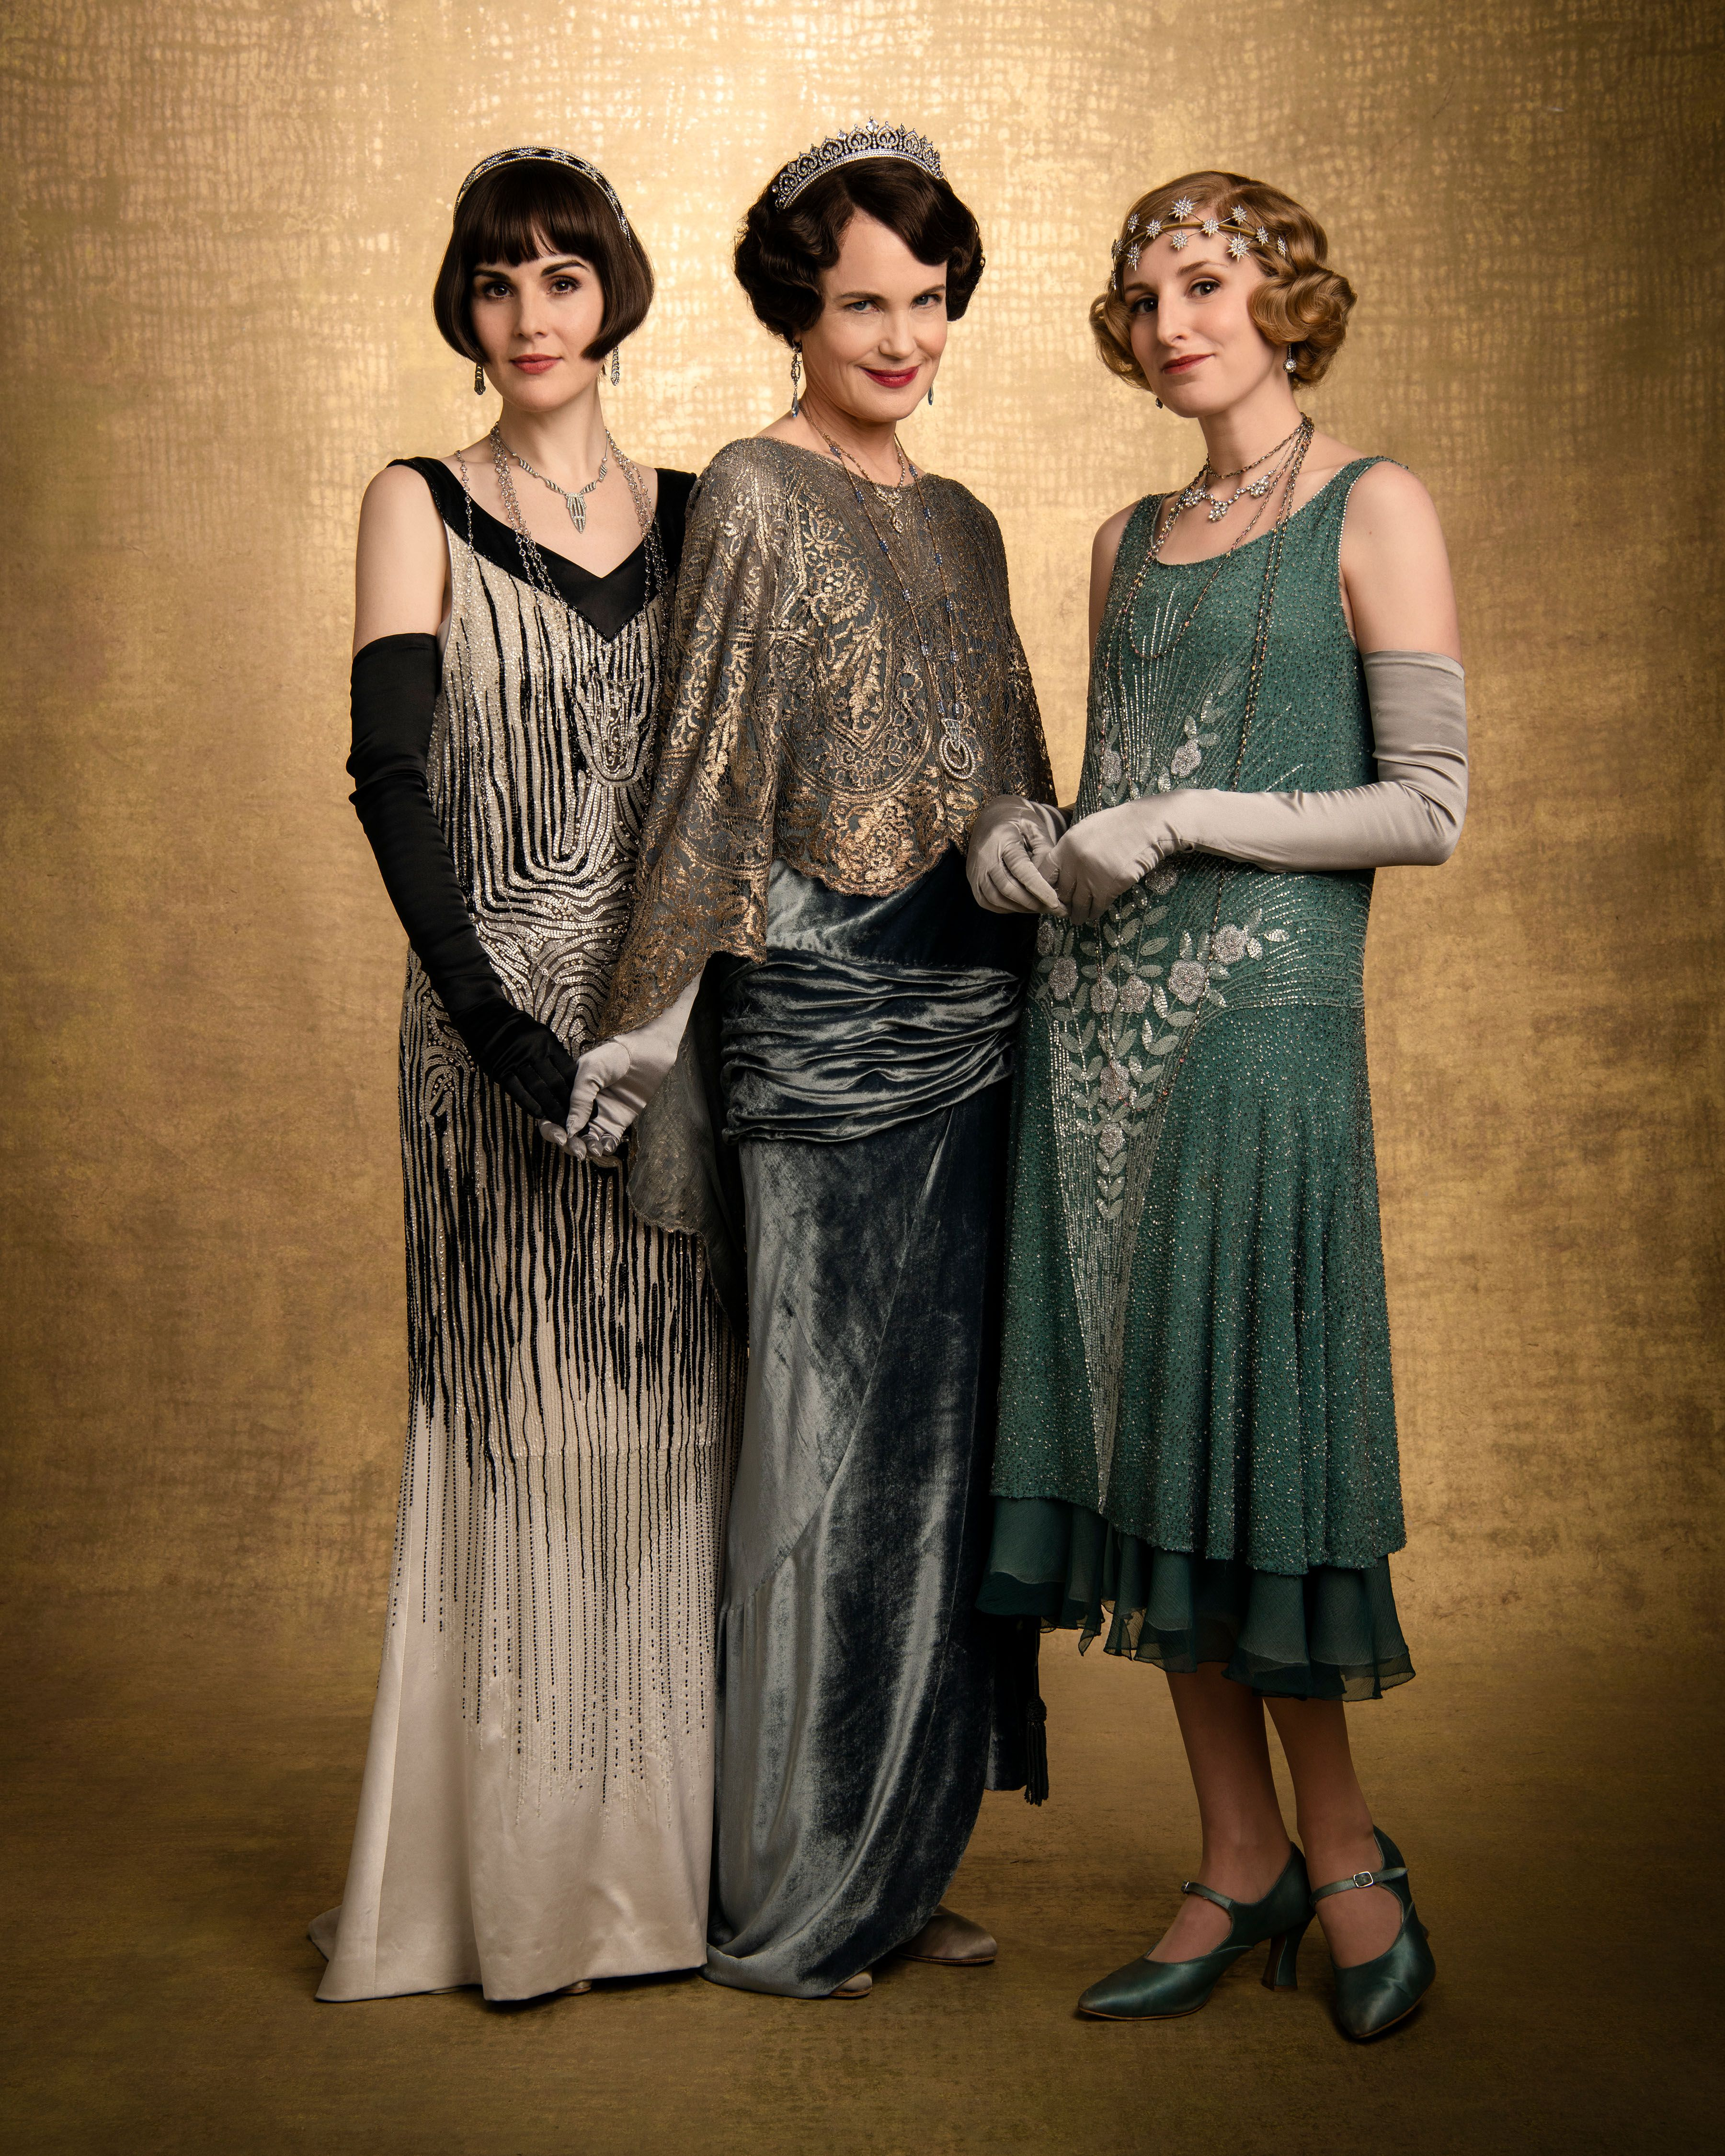 Is Downton Abbey Based on a Real Family?